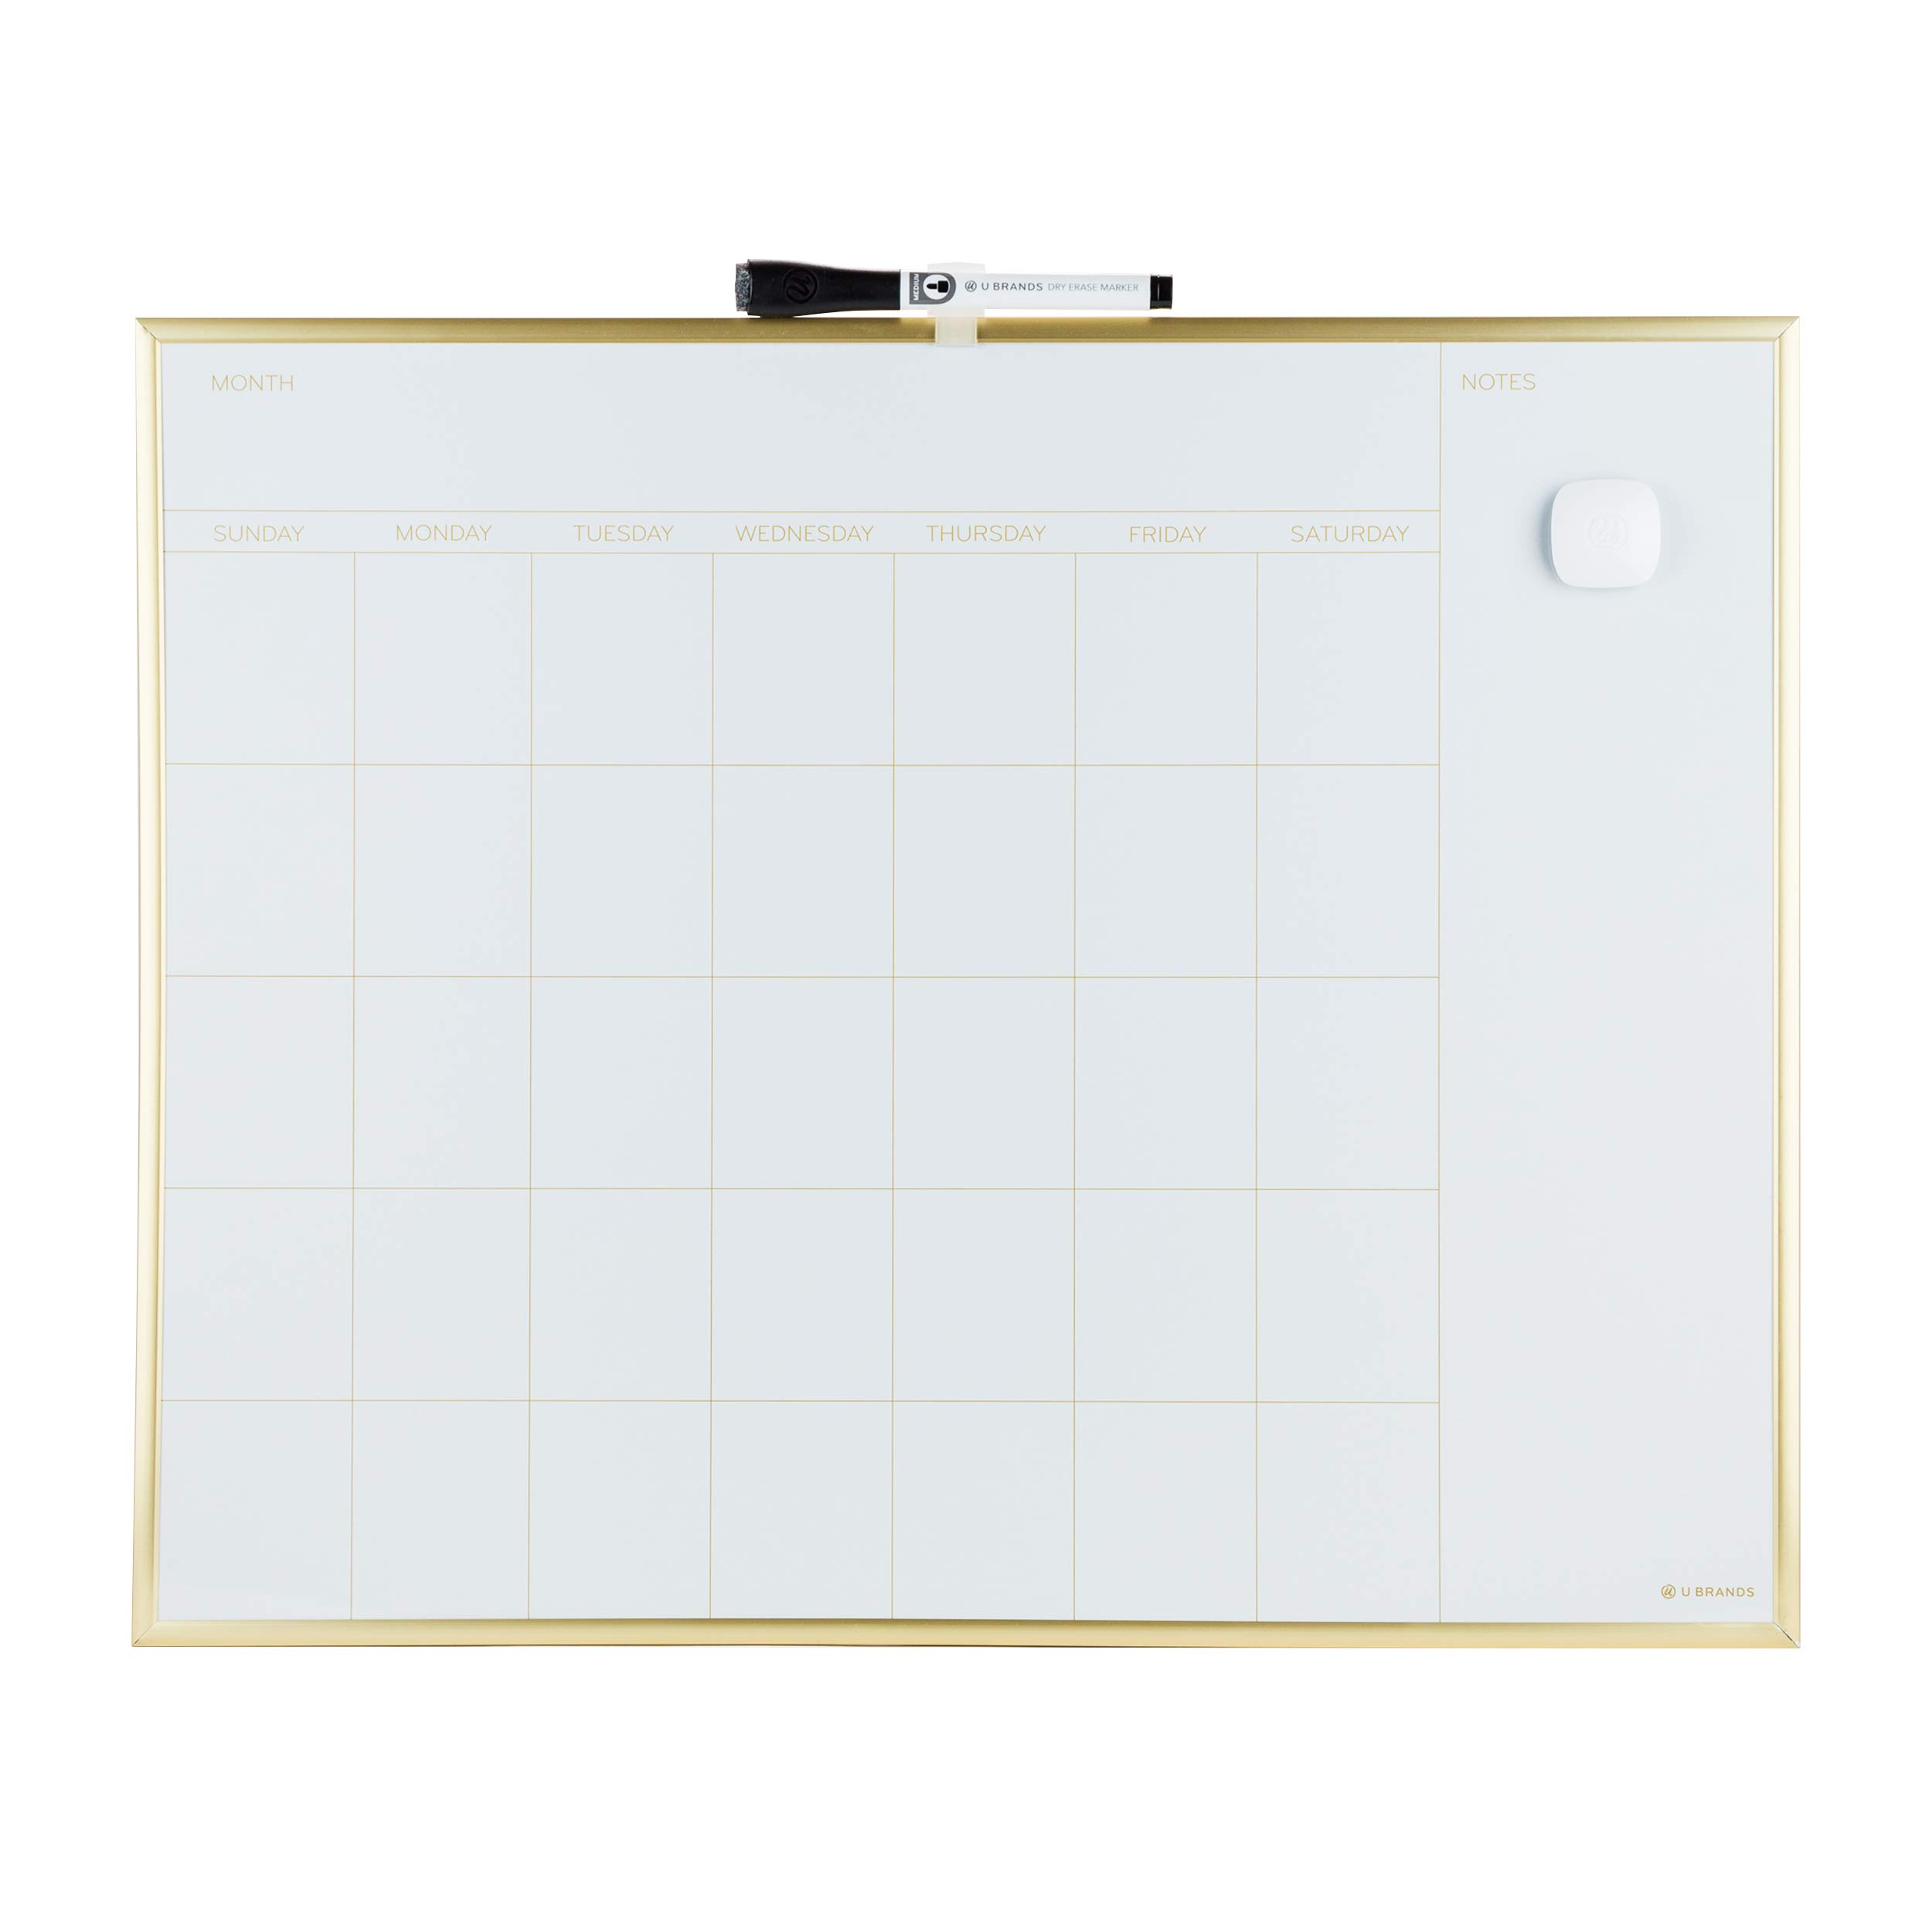 U Brands Magnetic Monthly Calendar Dry Erase Board, 20 x 16 Inches, Gold Aluminum Frame